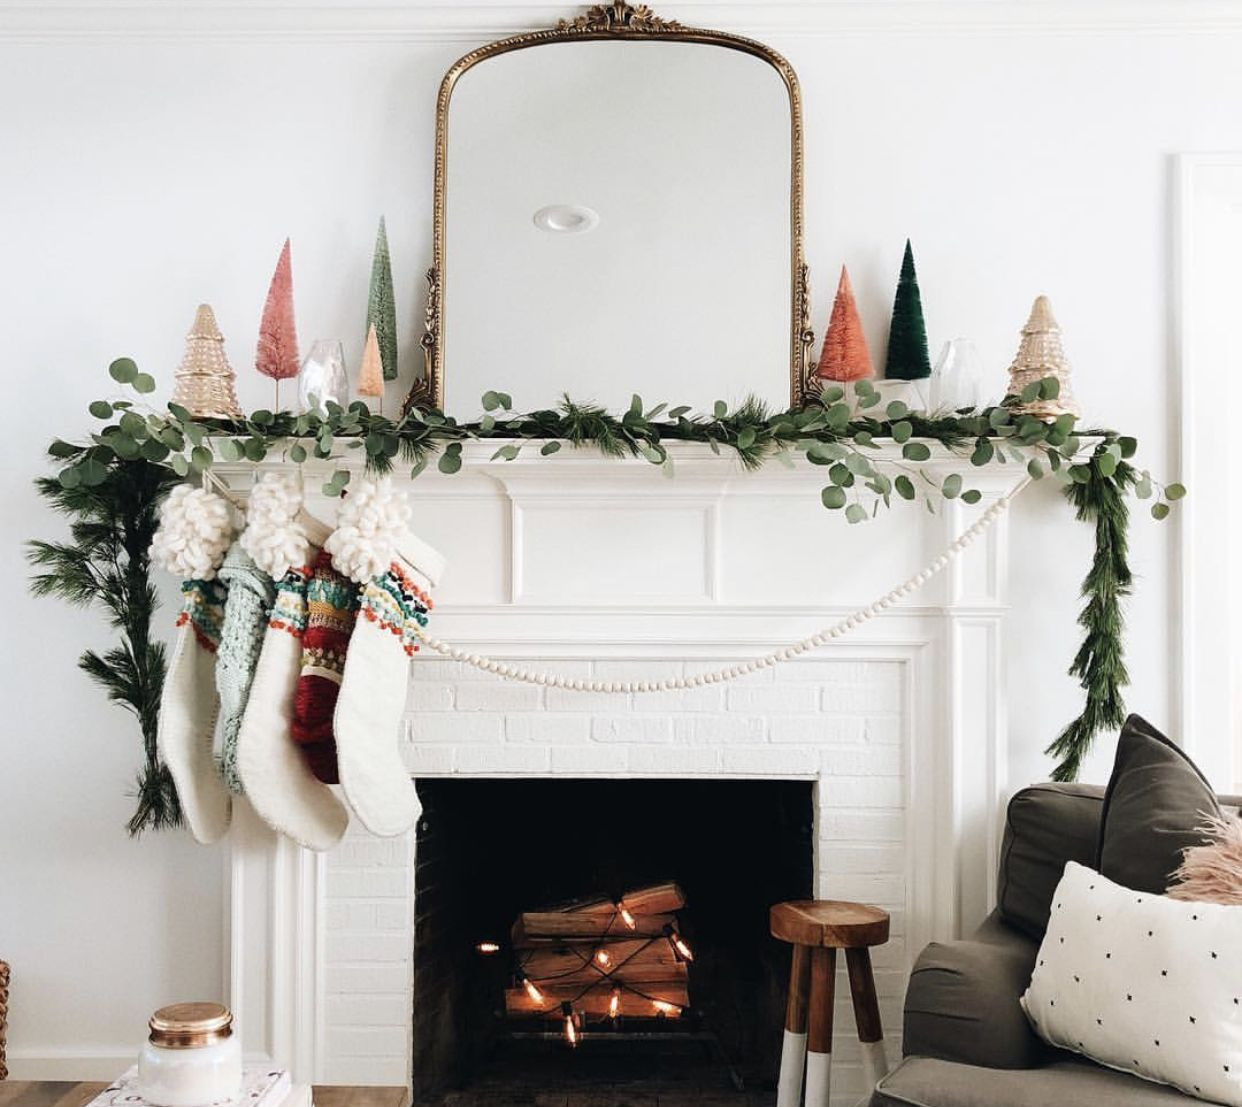 The best faux garlands for Christmas and the holidays! Prelit, realistic Christmas garlands. Beautiful images of garlands real and faux.